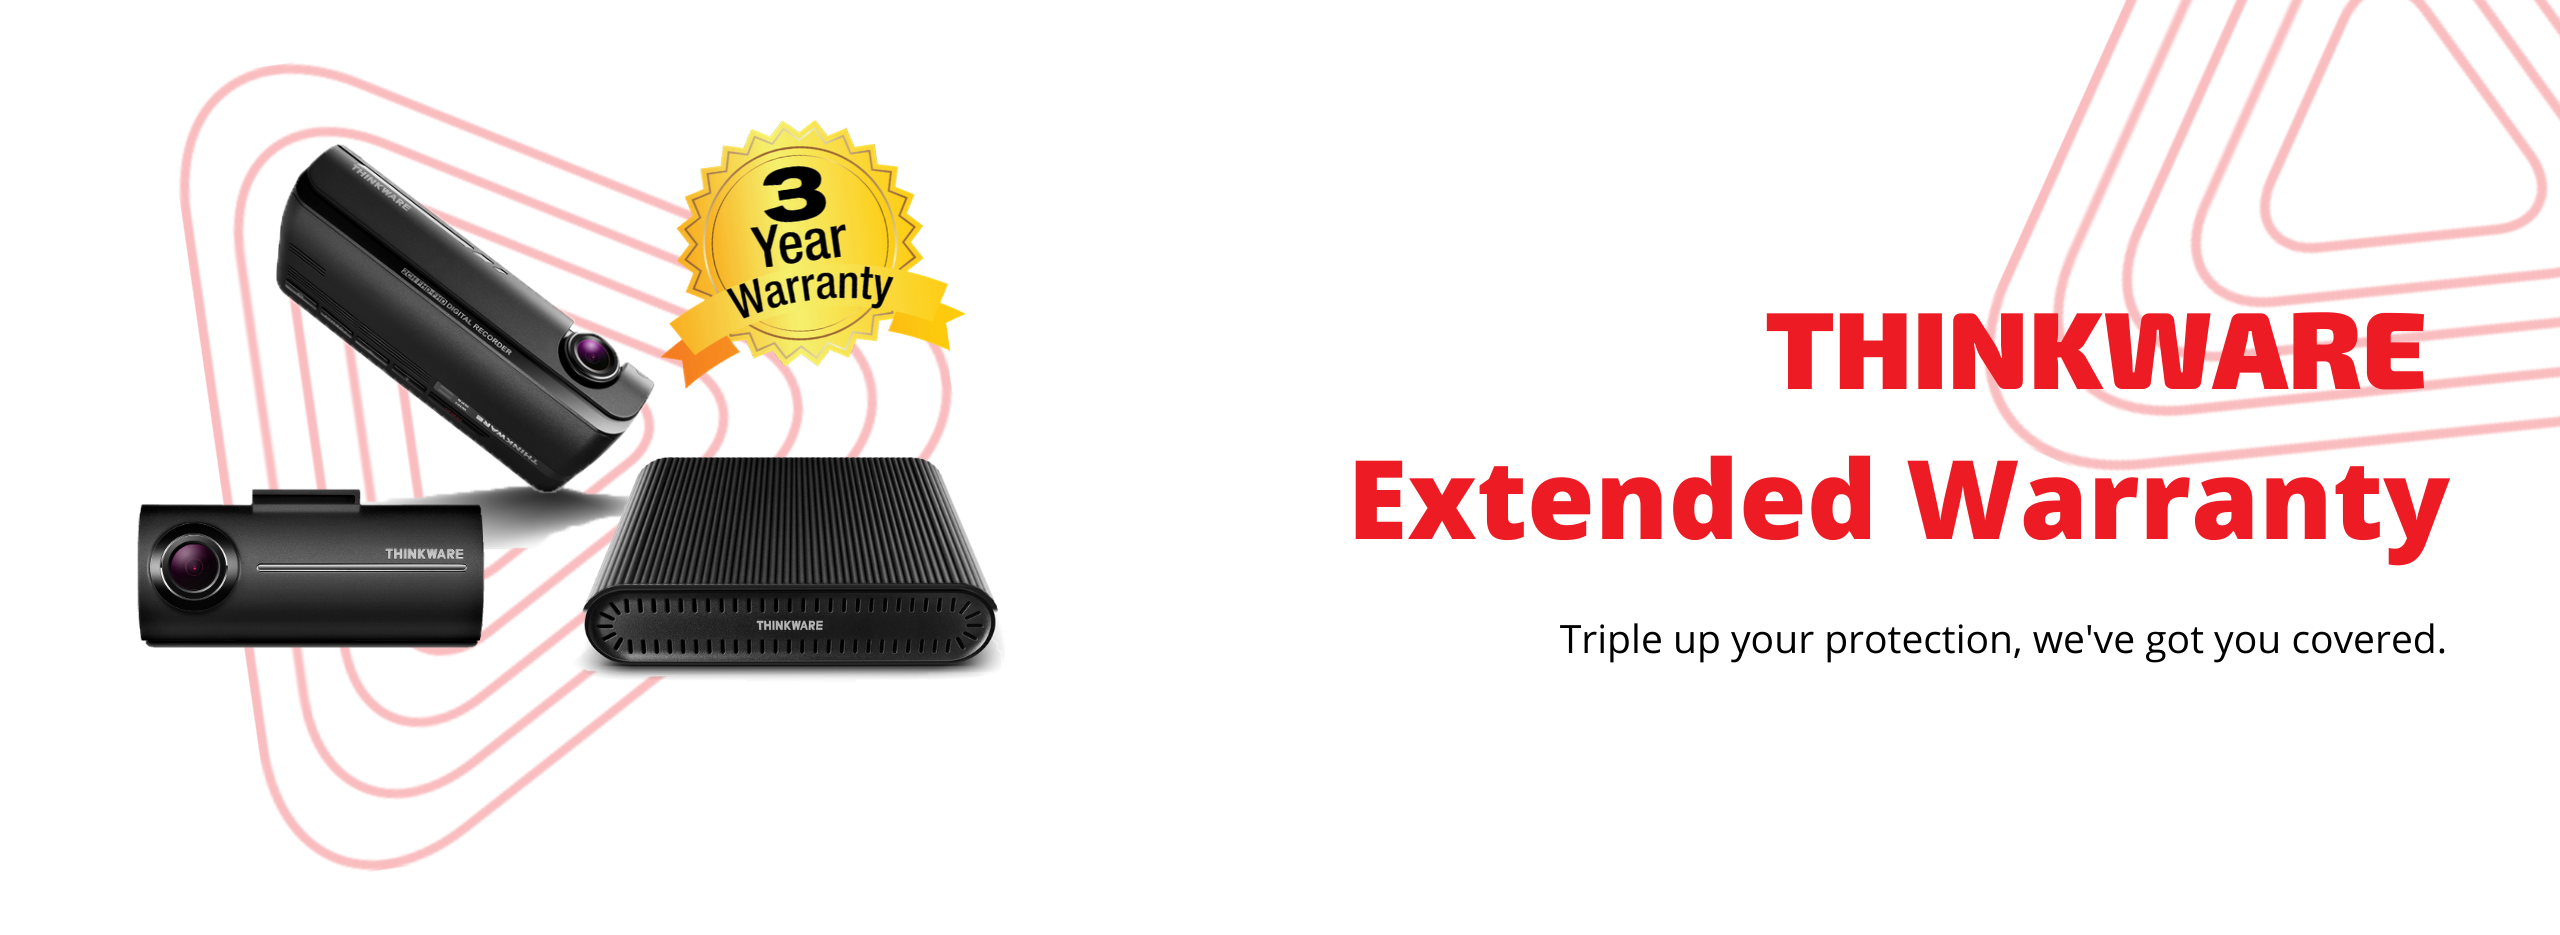 Thinkware Extended Warranty